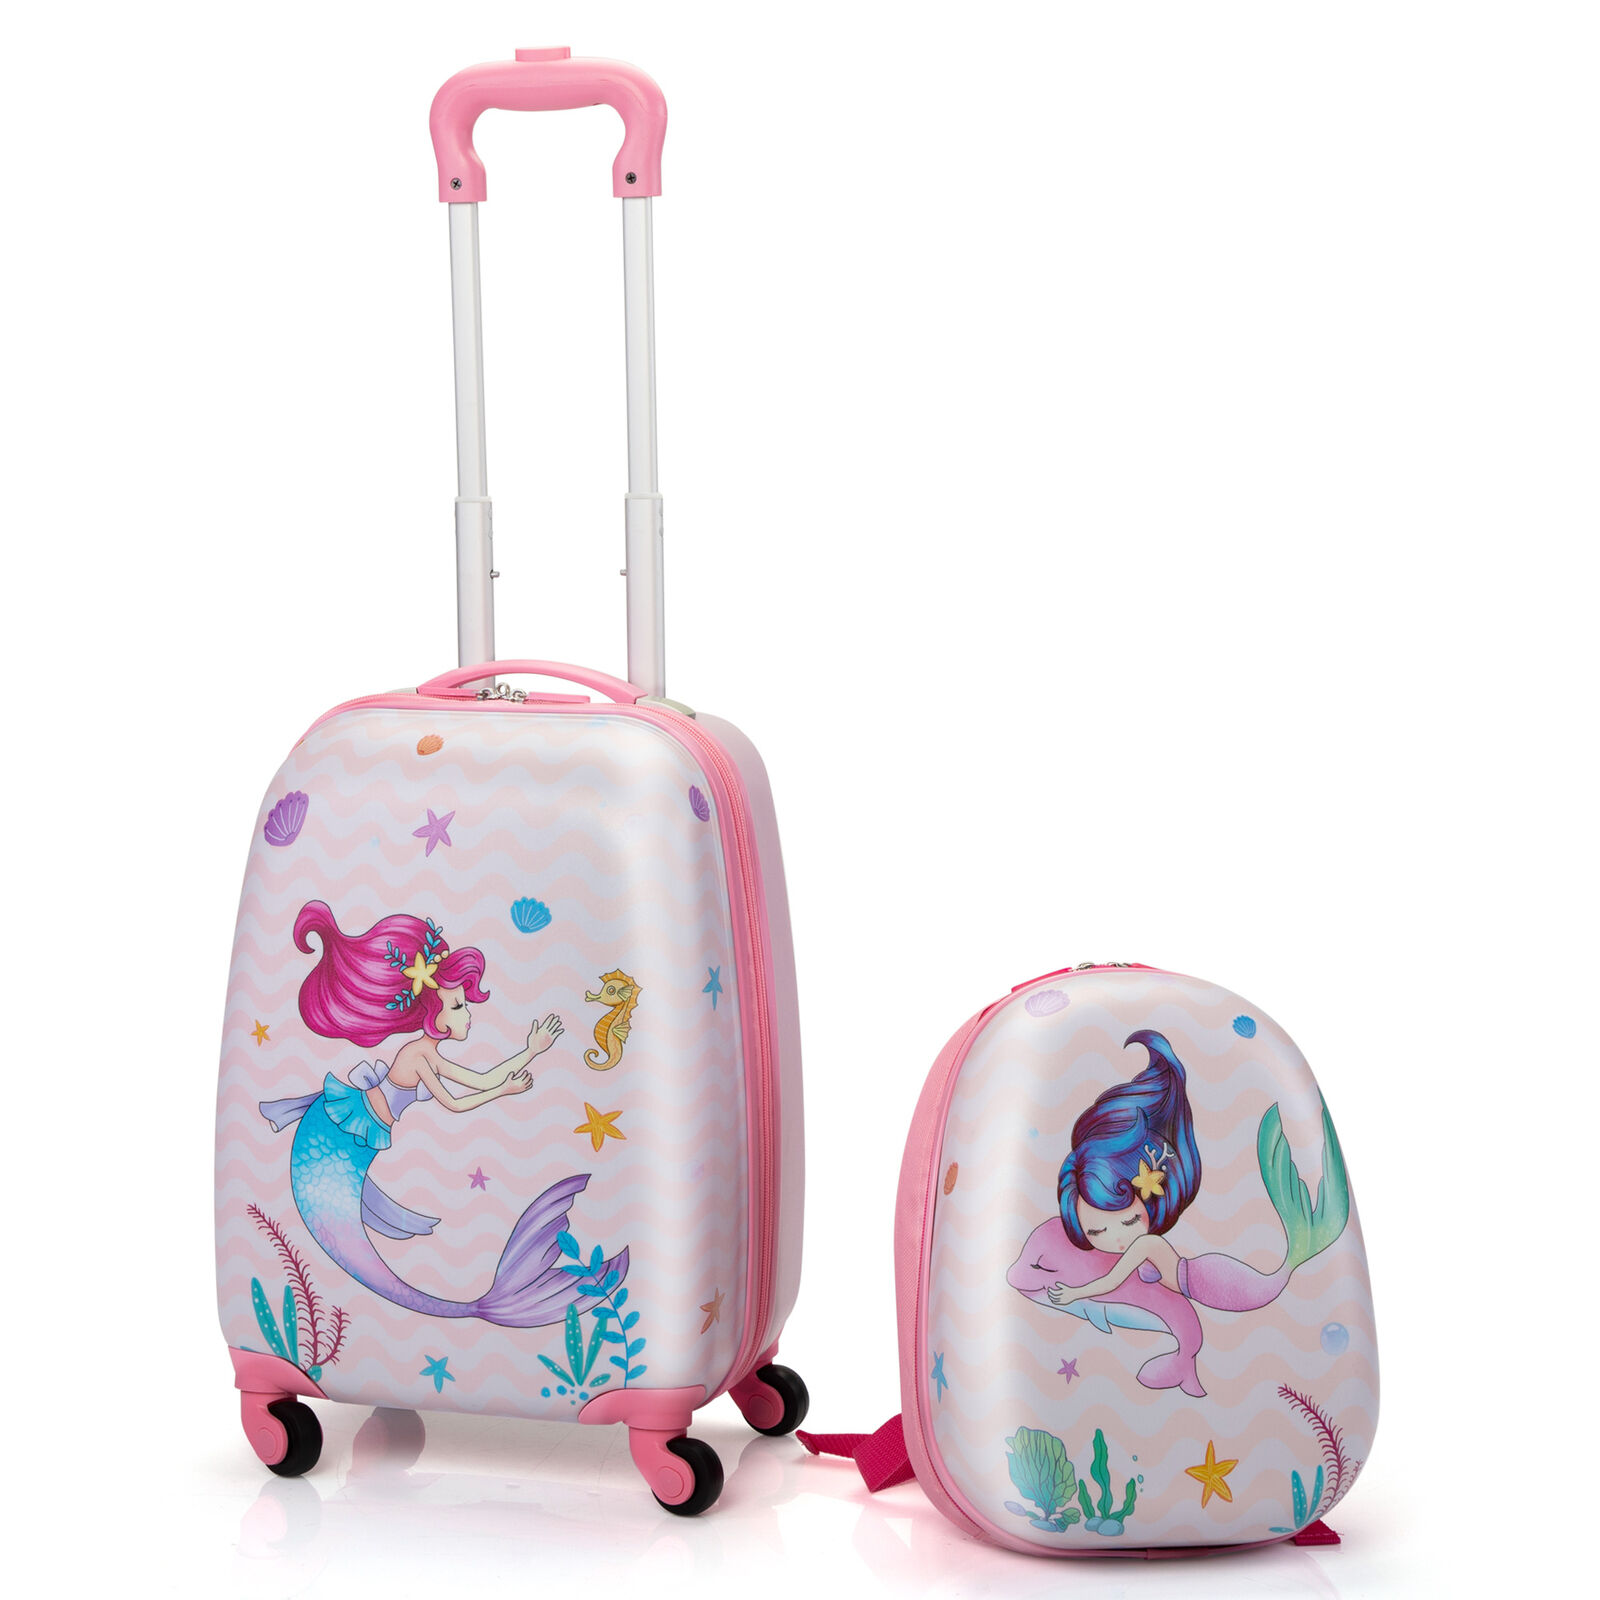 Kids Luggage with Wheels for Girls 12 Toddler Backpack & 16 Travel Suitcase